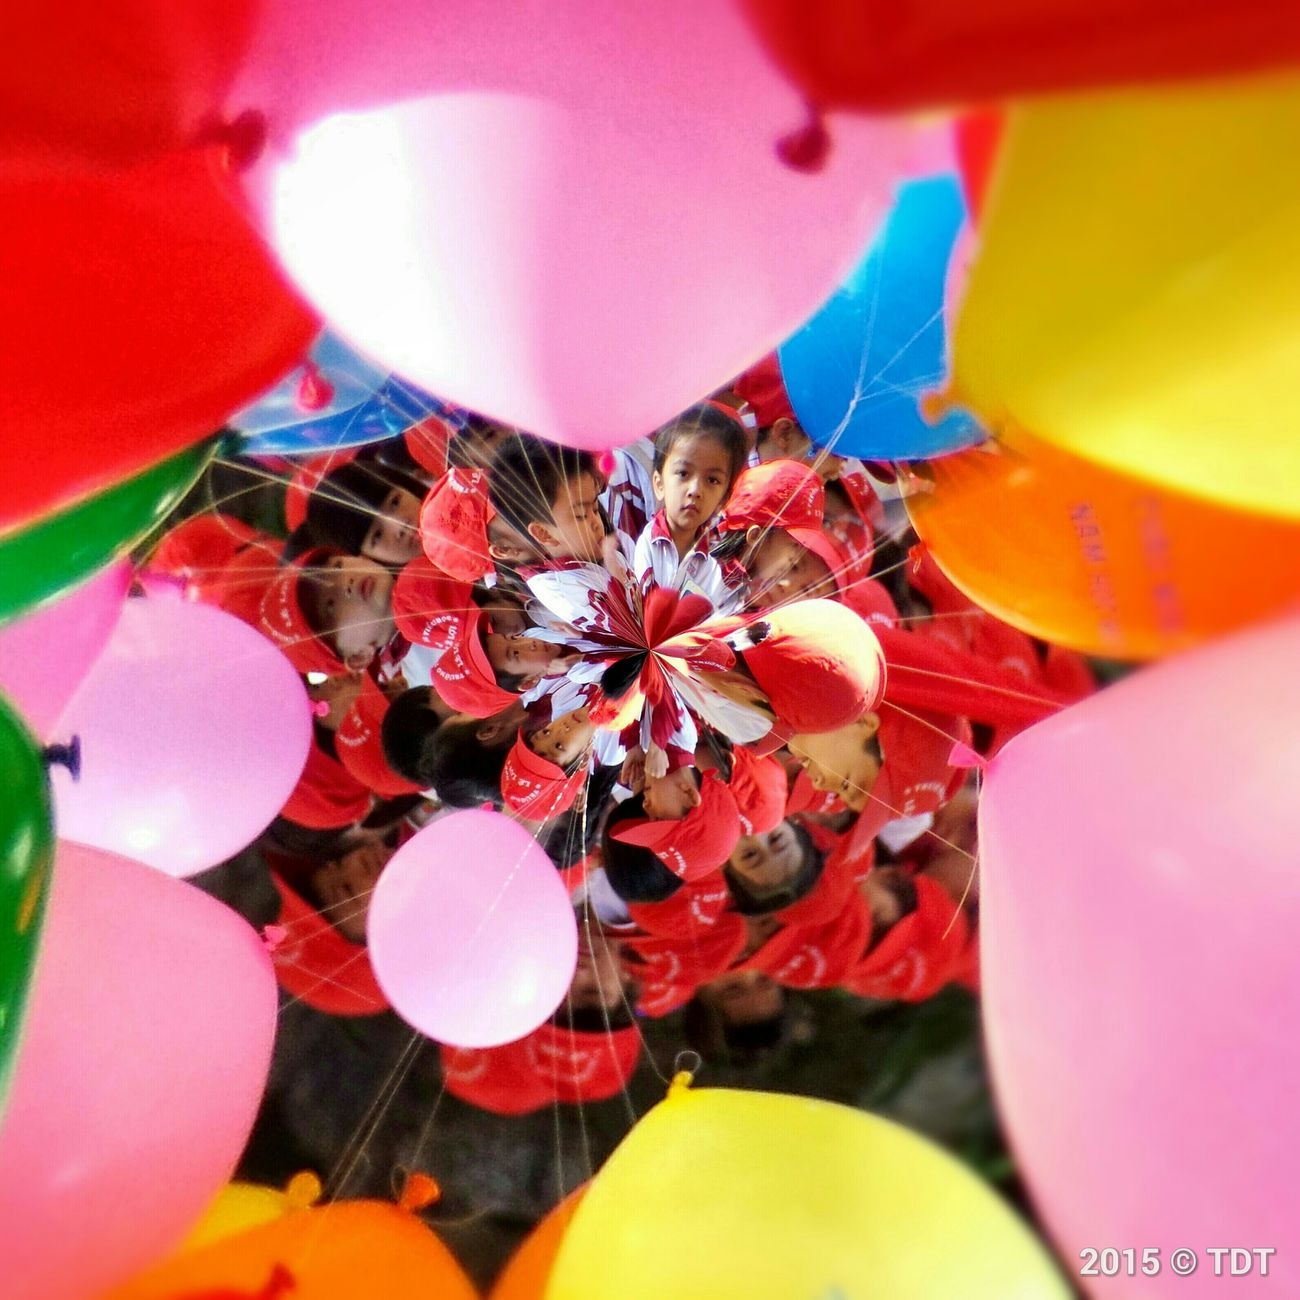 new schoolyear Kids Children Newschoolyear Colors Tinyplanetfx Balloons